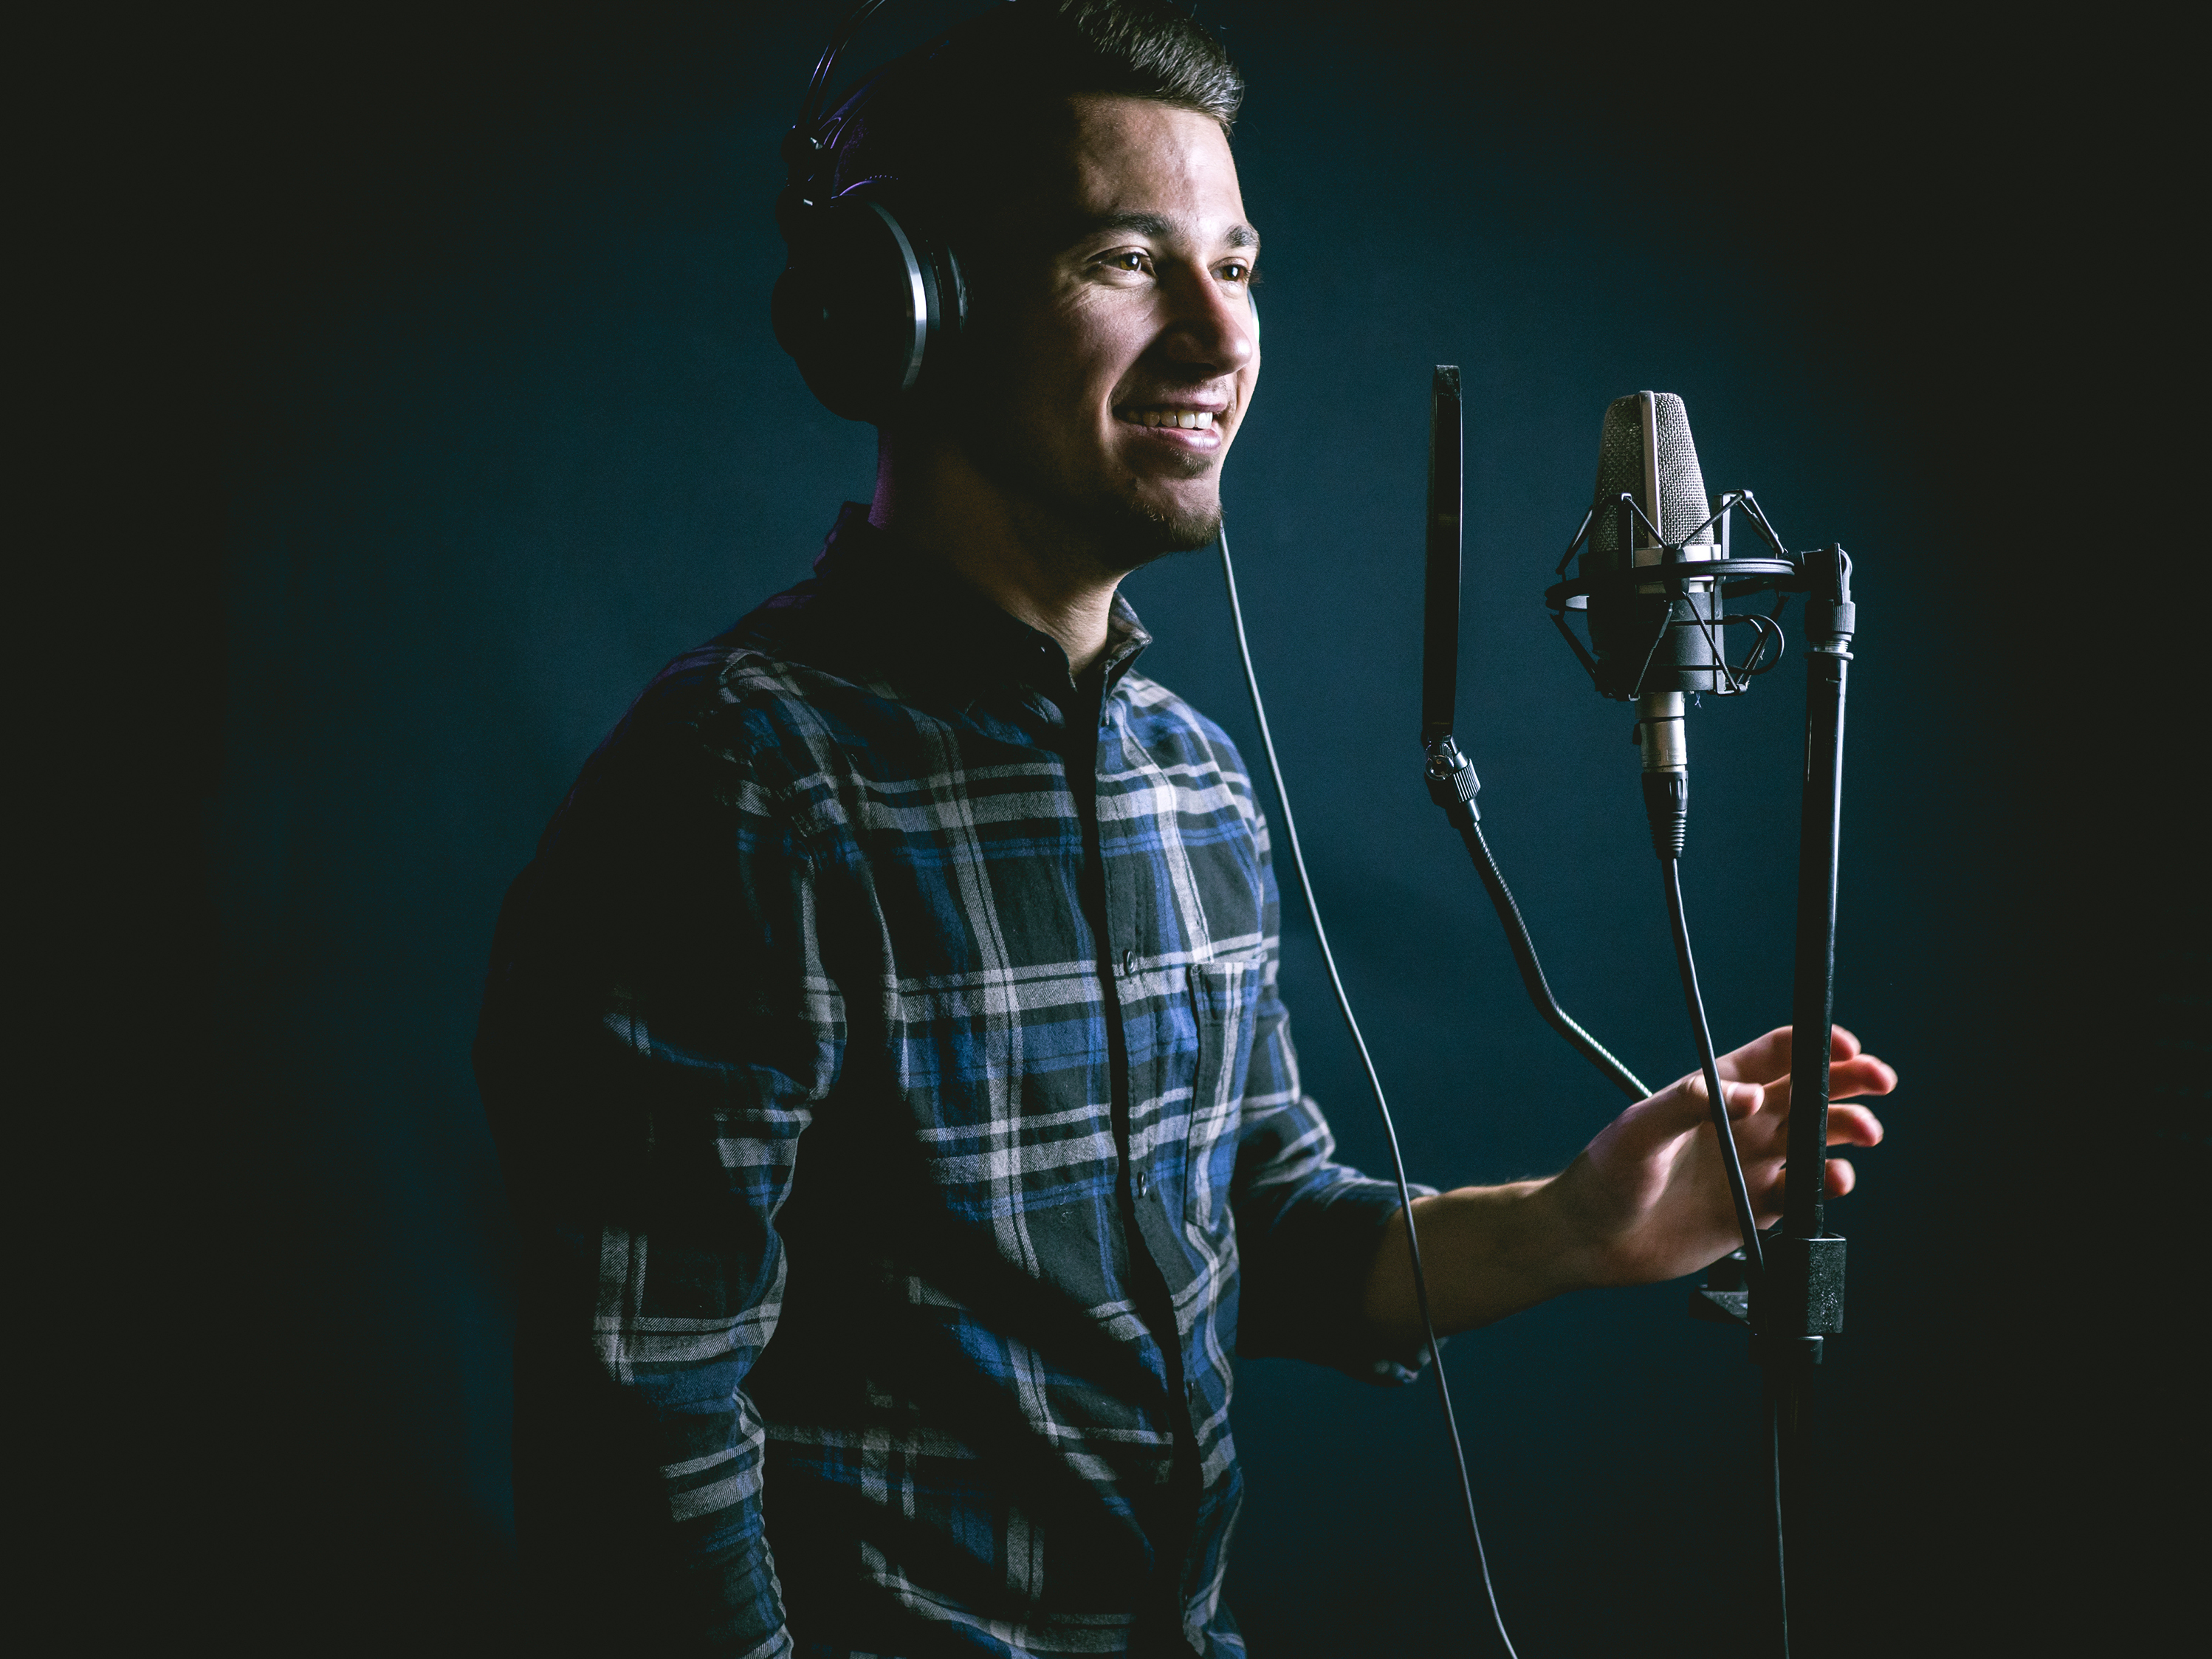 How to process voice-over in post?